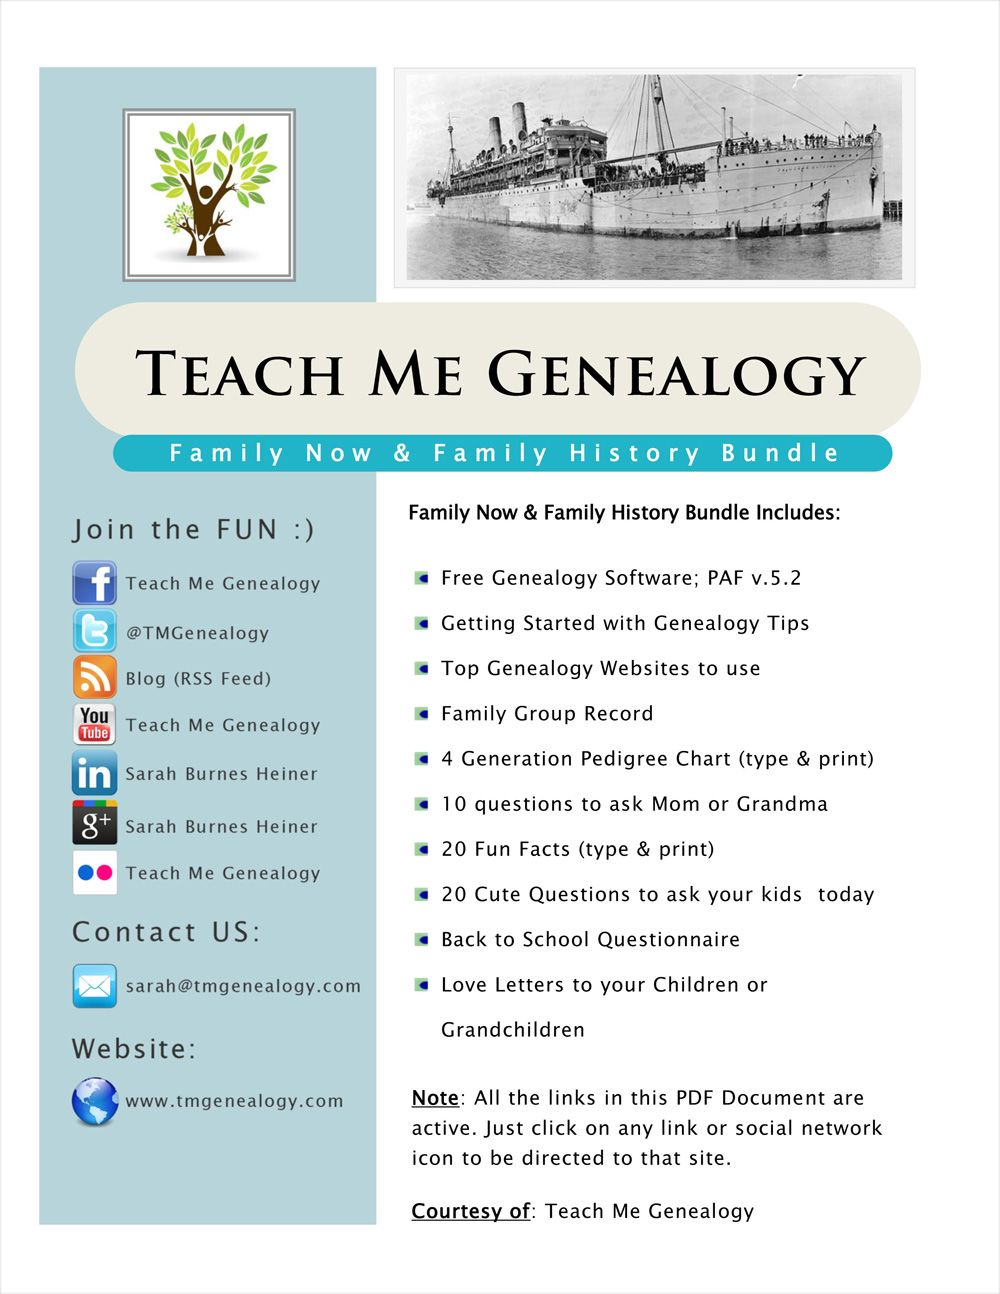 free family history bundle finally released software pedigree chart family group record